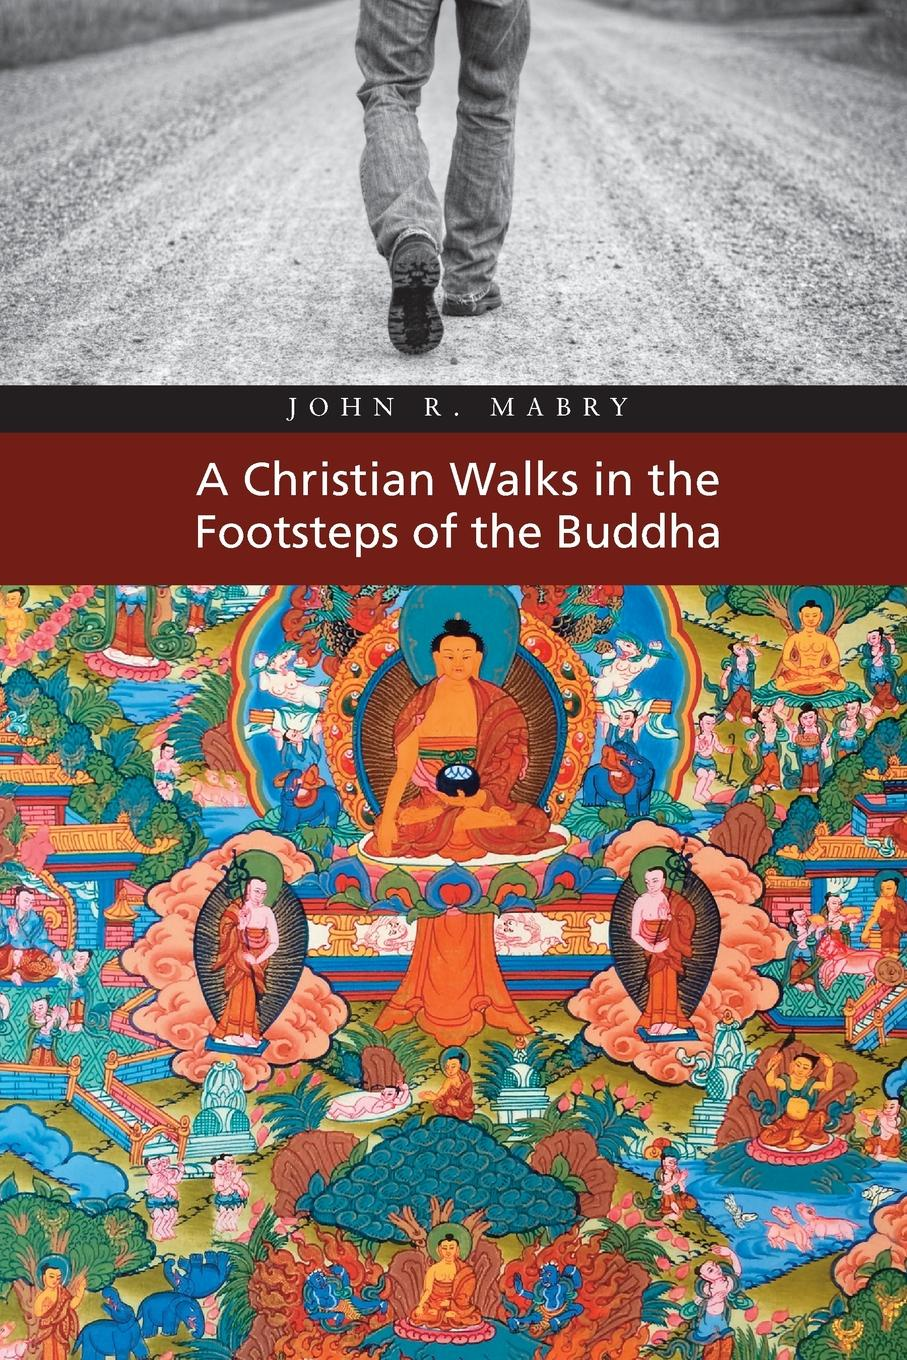 John R. Mabry A Christian Walks in the Footsteps of the Buddha